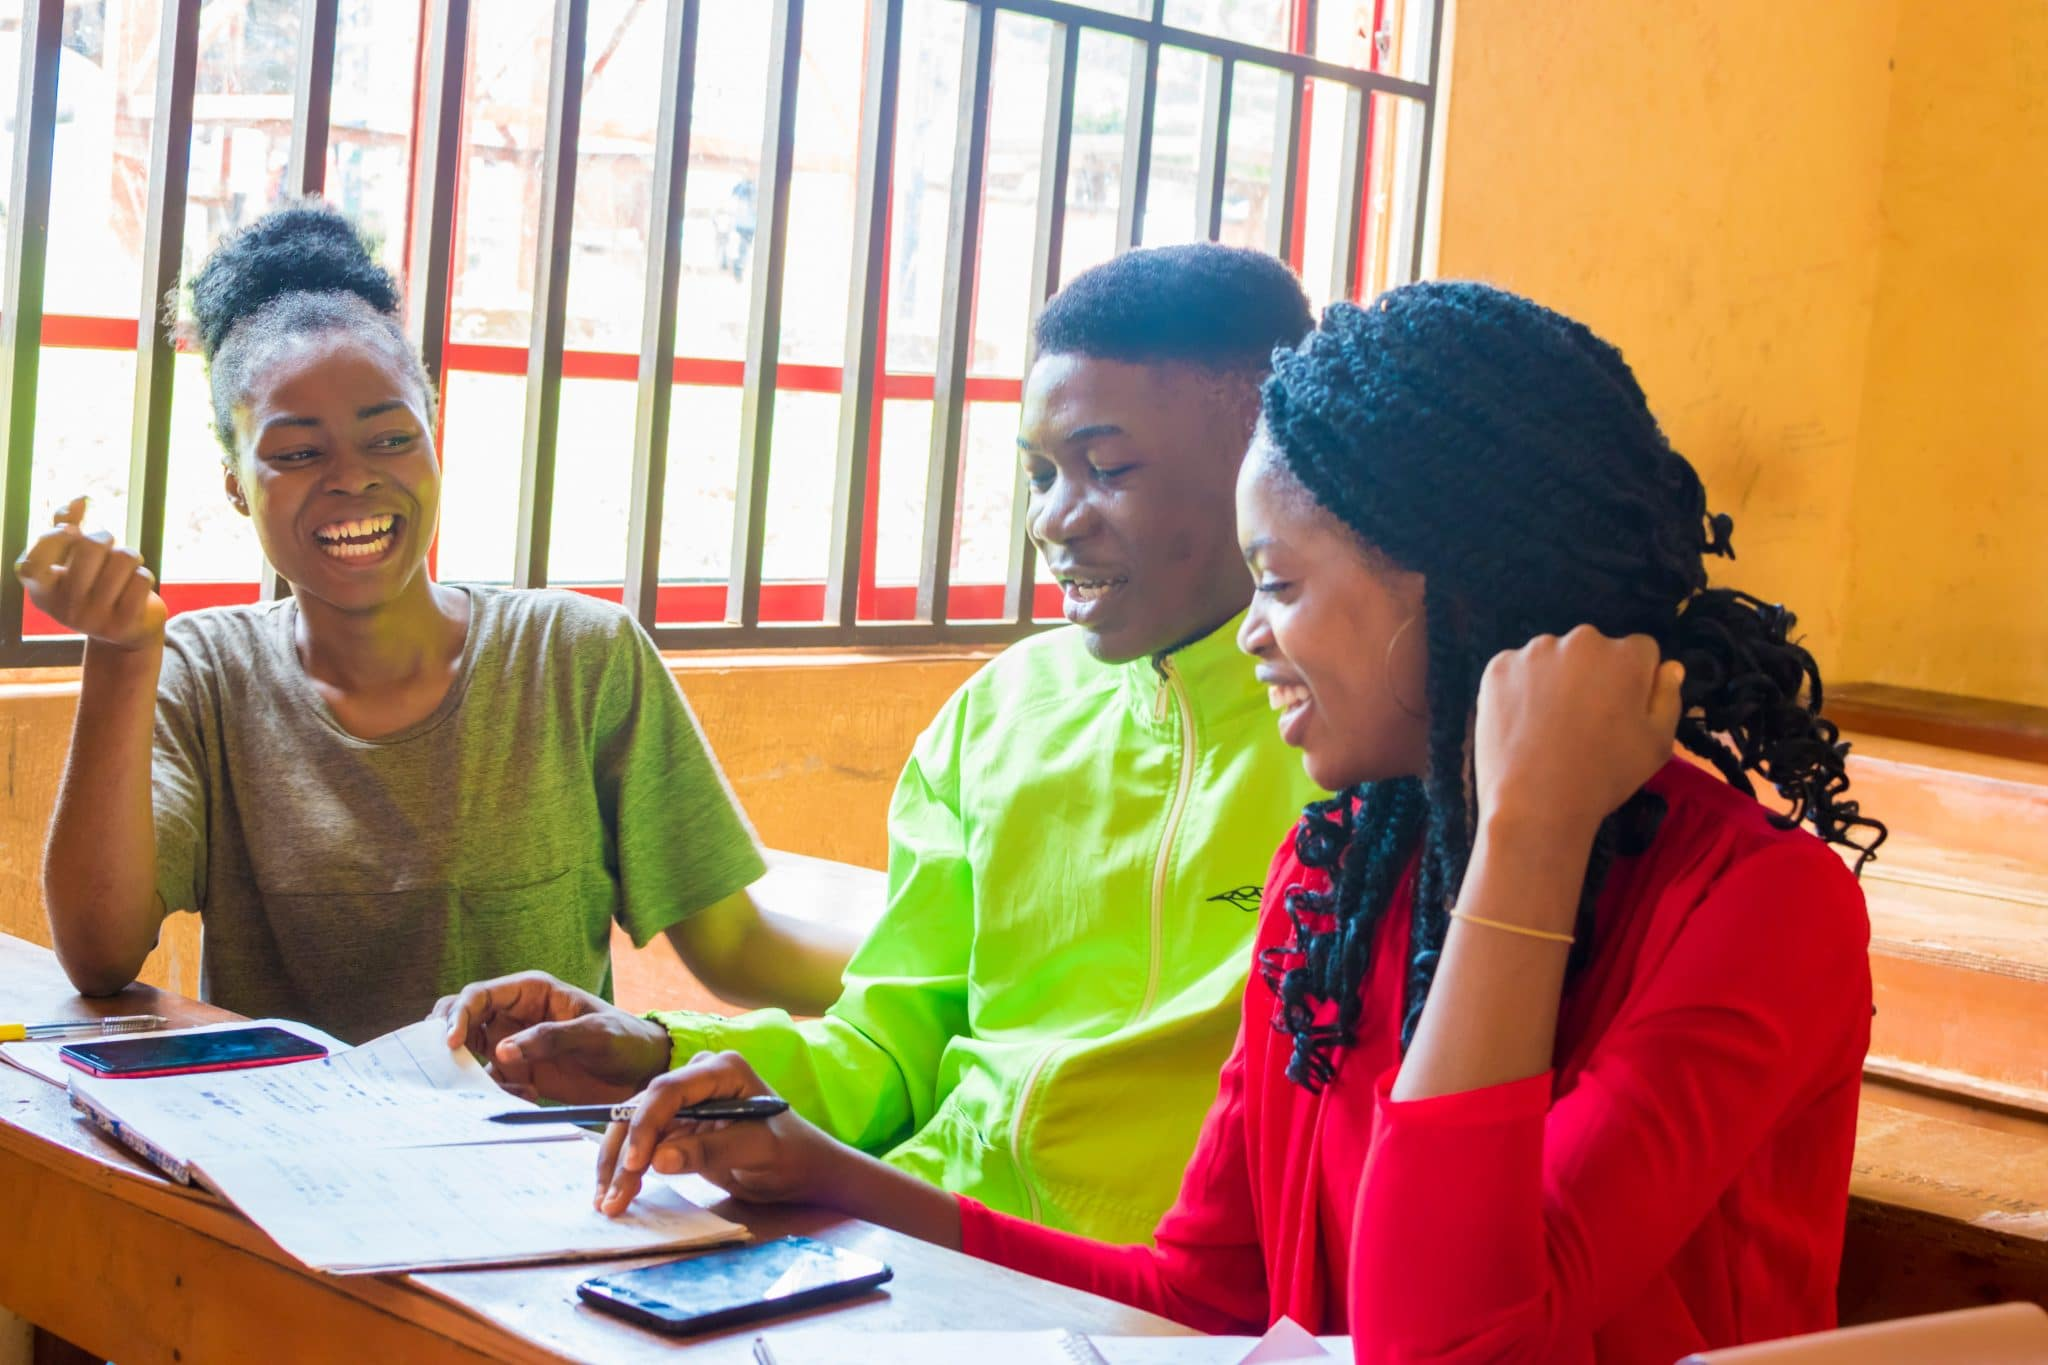 Three young Africans studying together